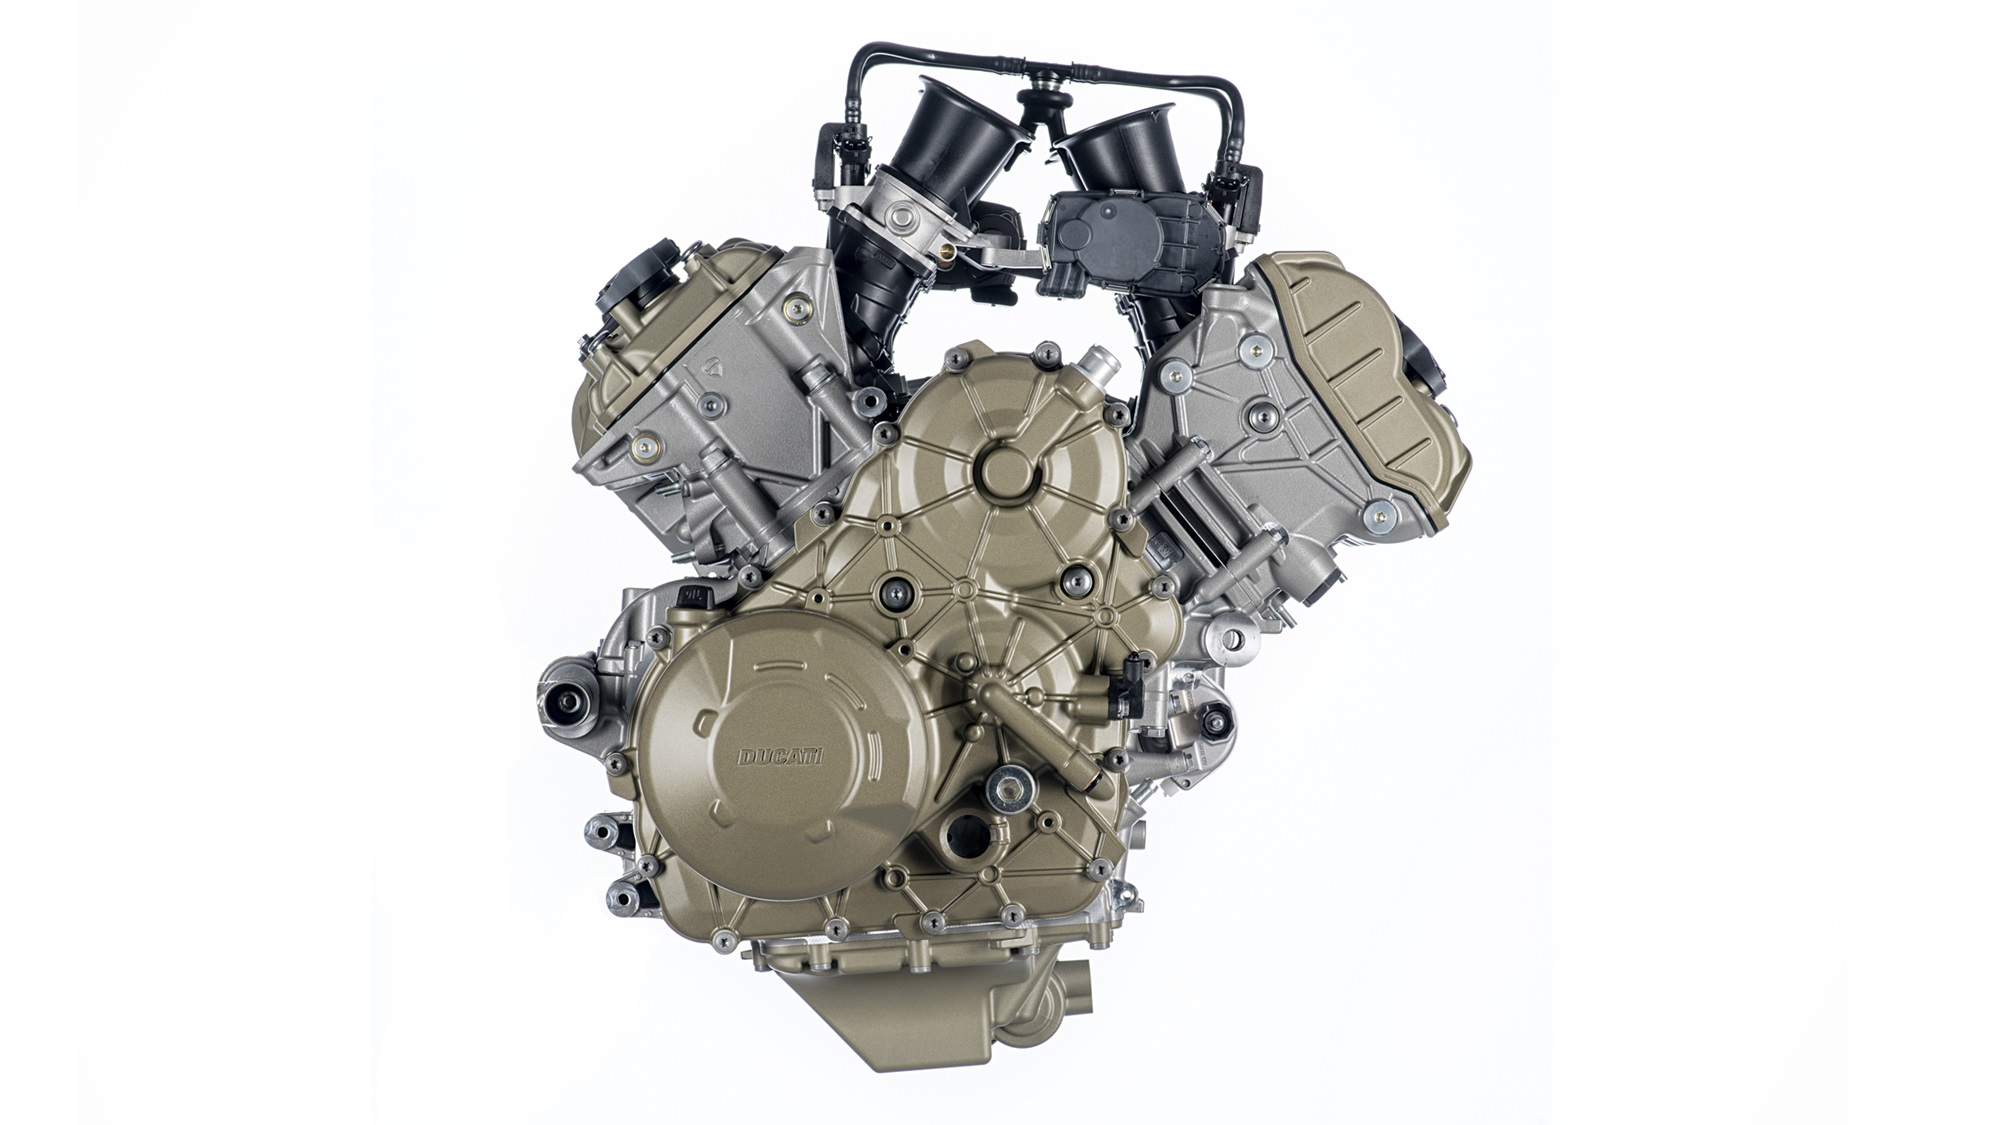 The new Ducati V4 Granturismo engine will make 170 HP and 125 Nm